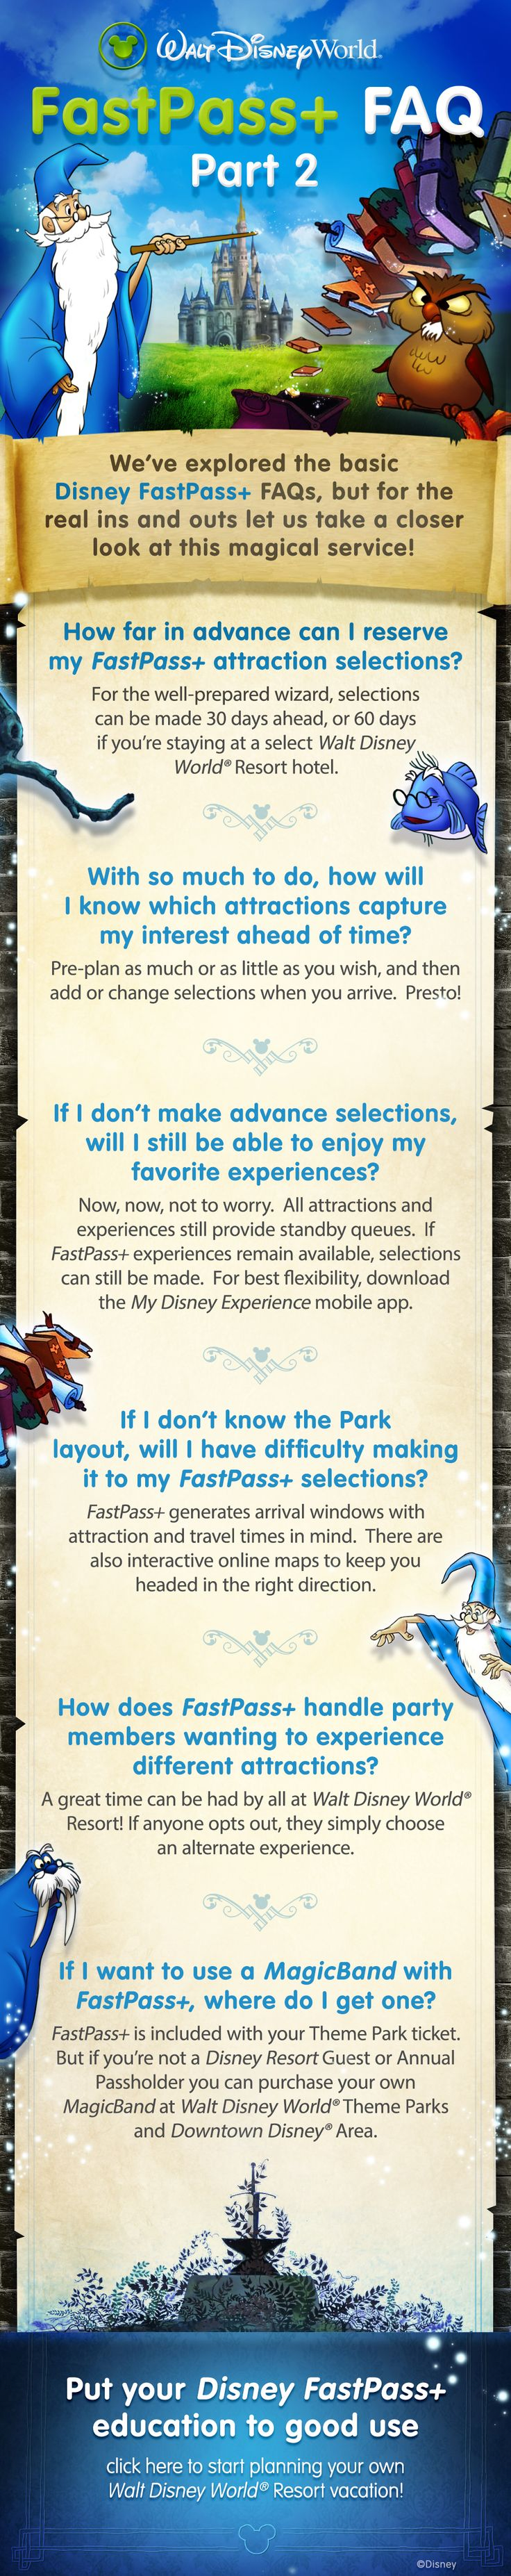 FastPass+ Frequently Asked Questions - Walt Disney World